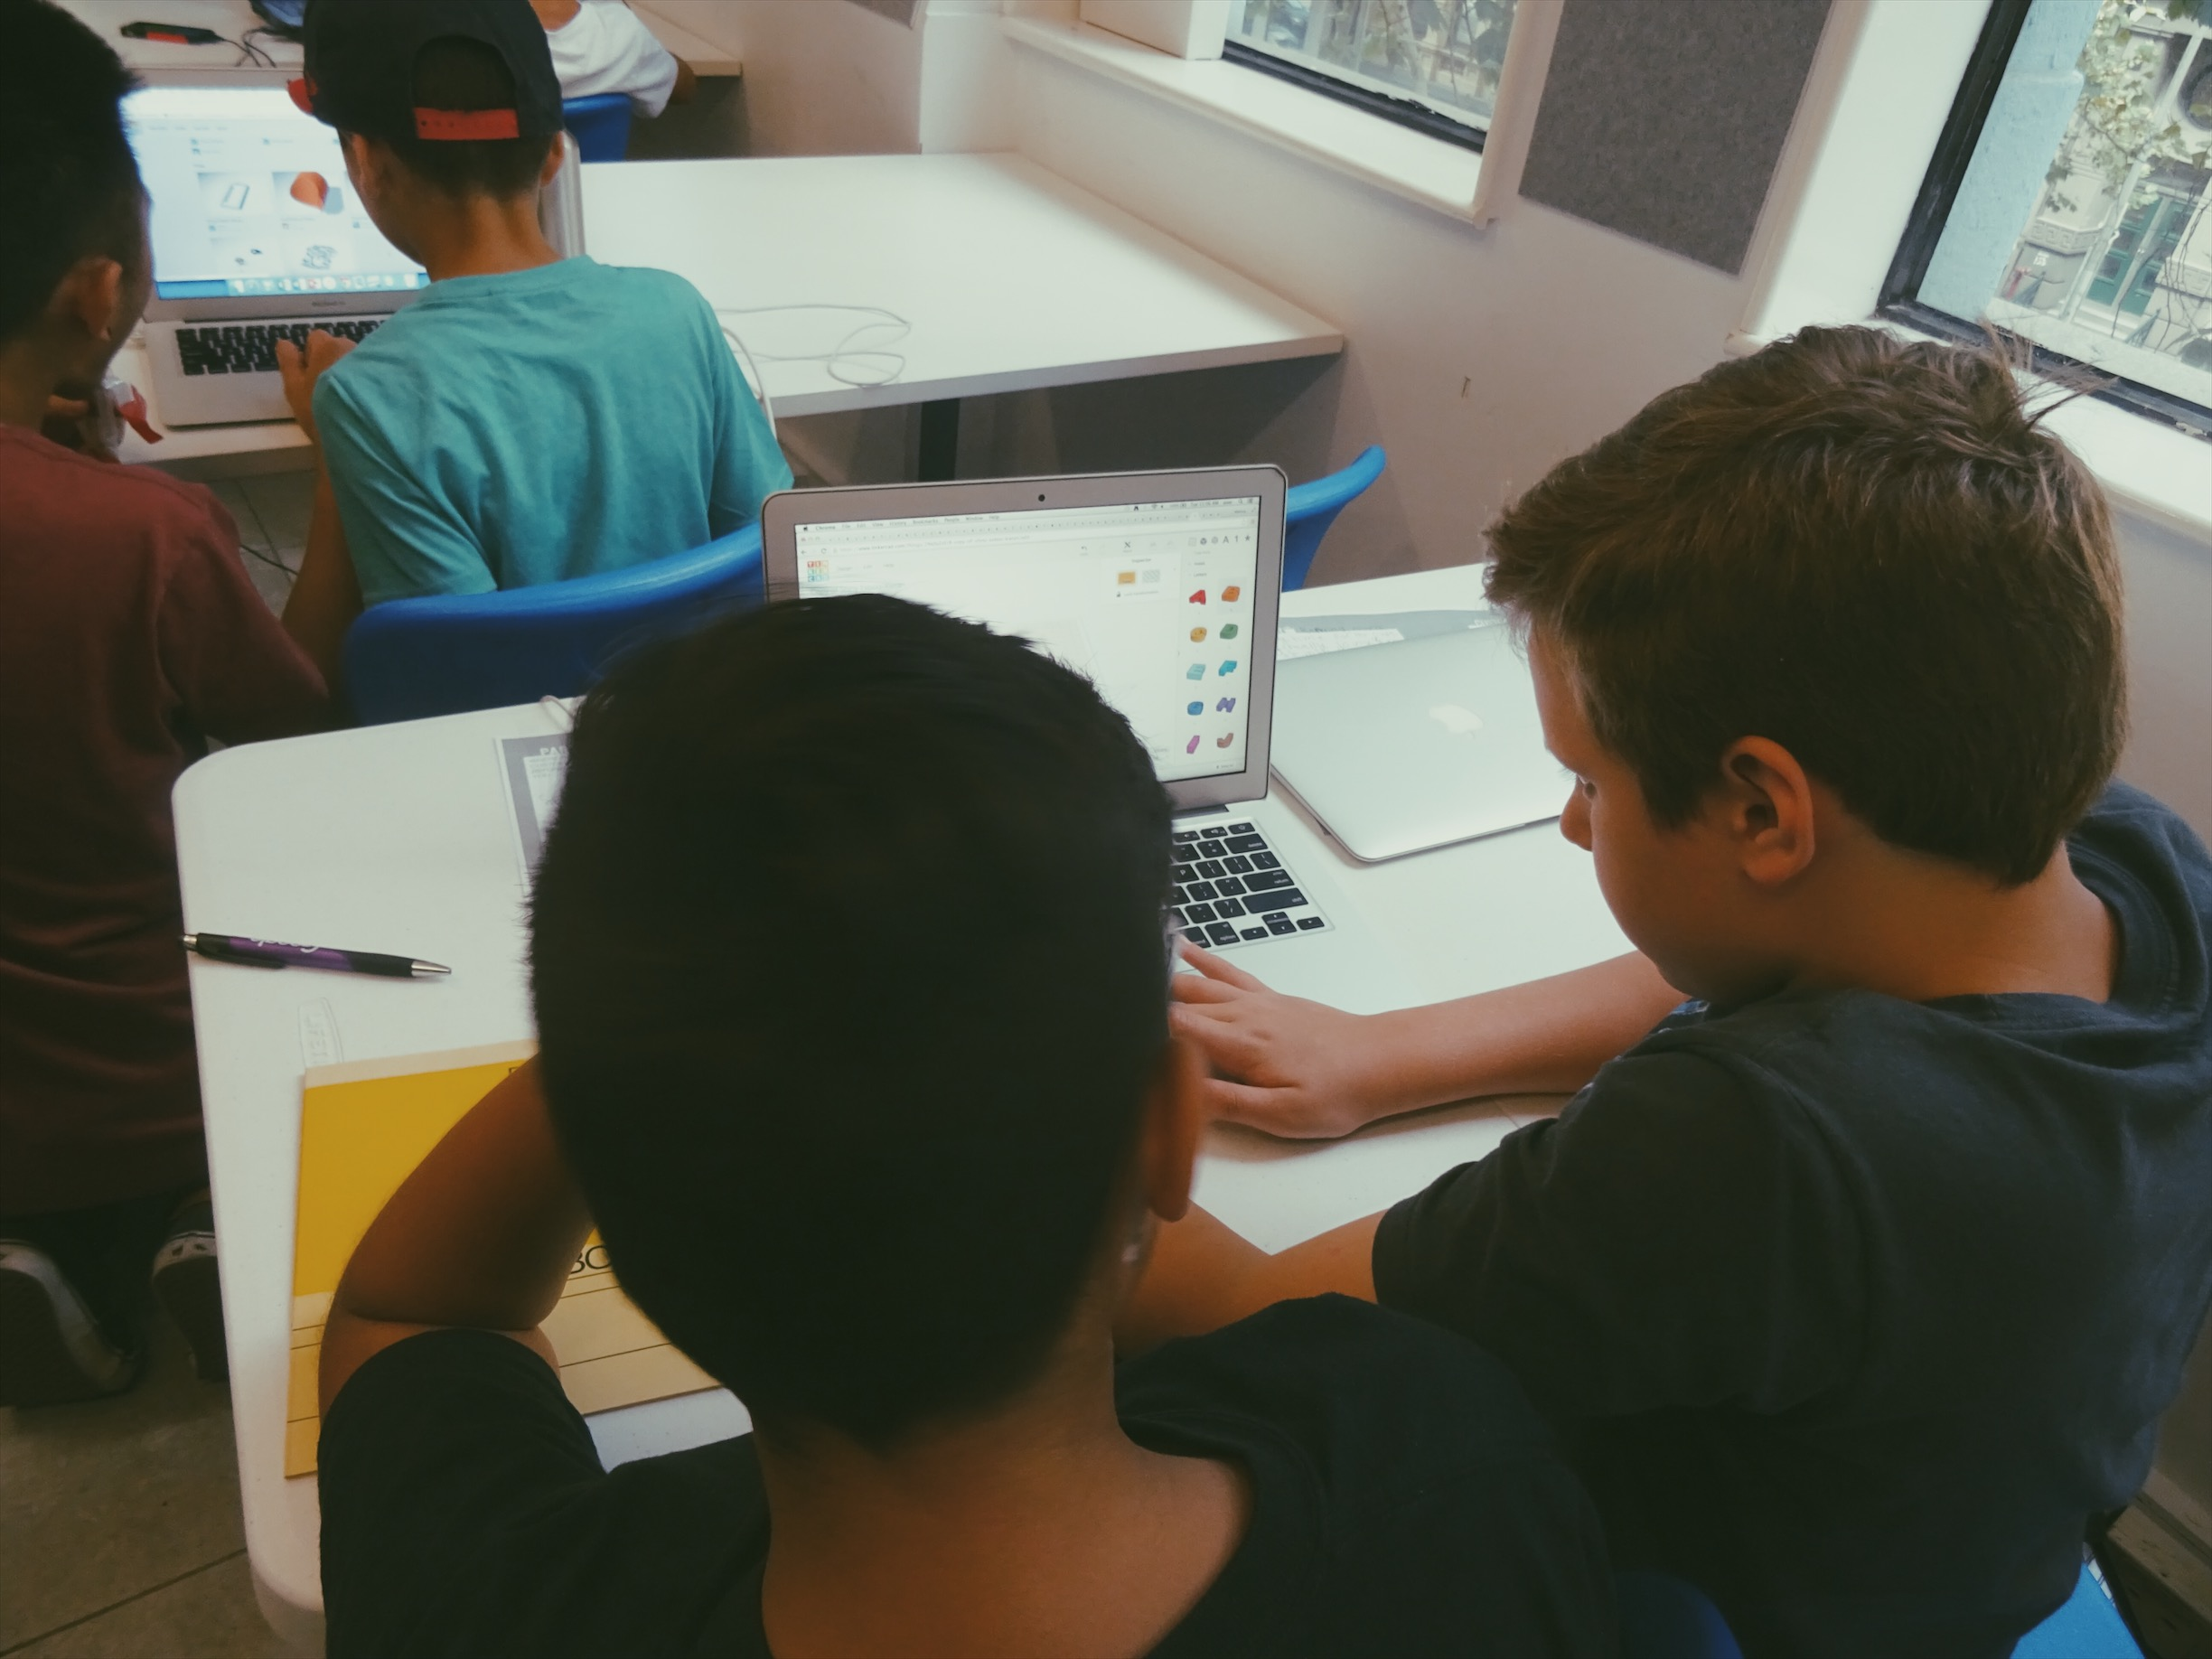 Lemonade Stand Kids AR: two boys work on a model in Tinkercad